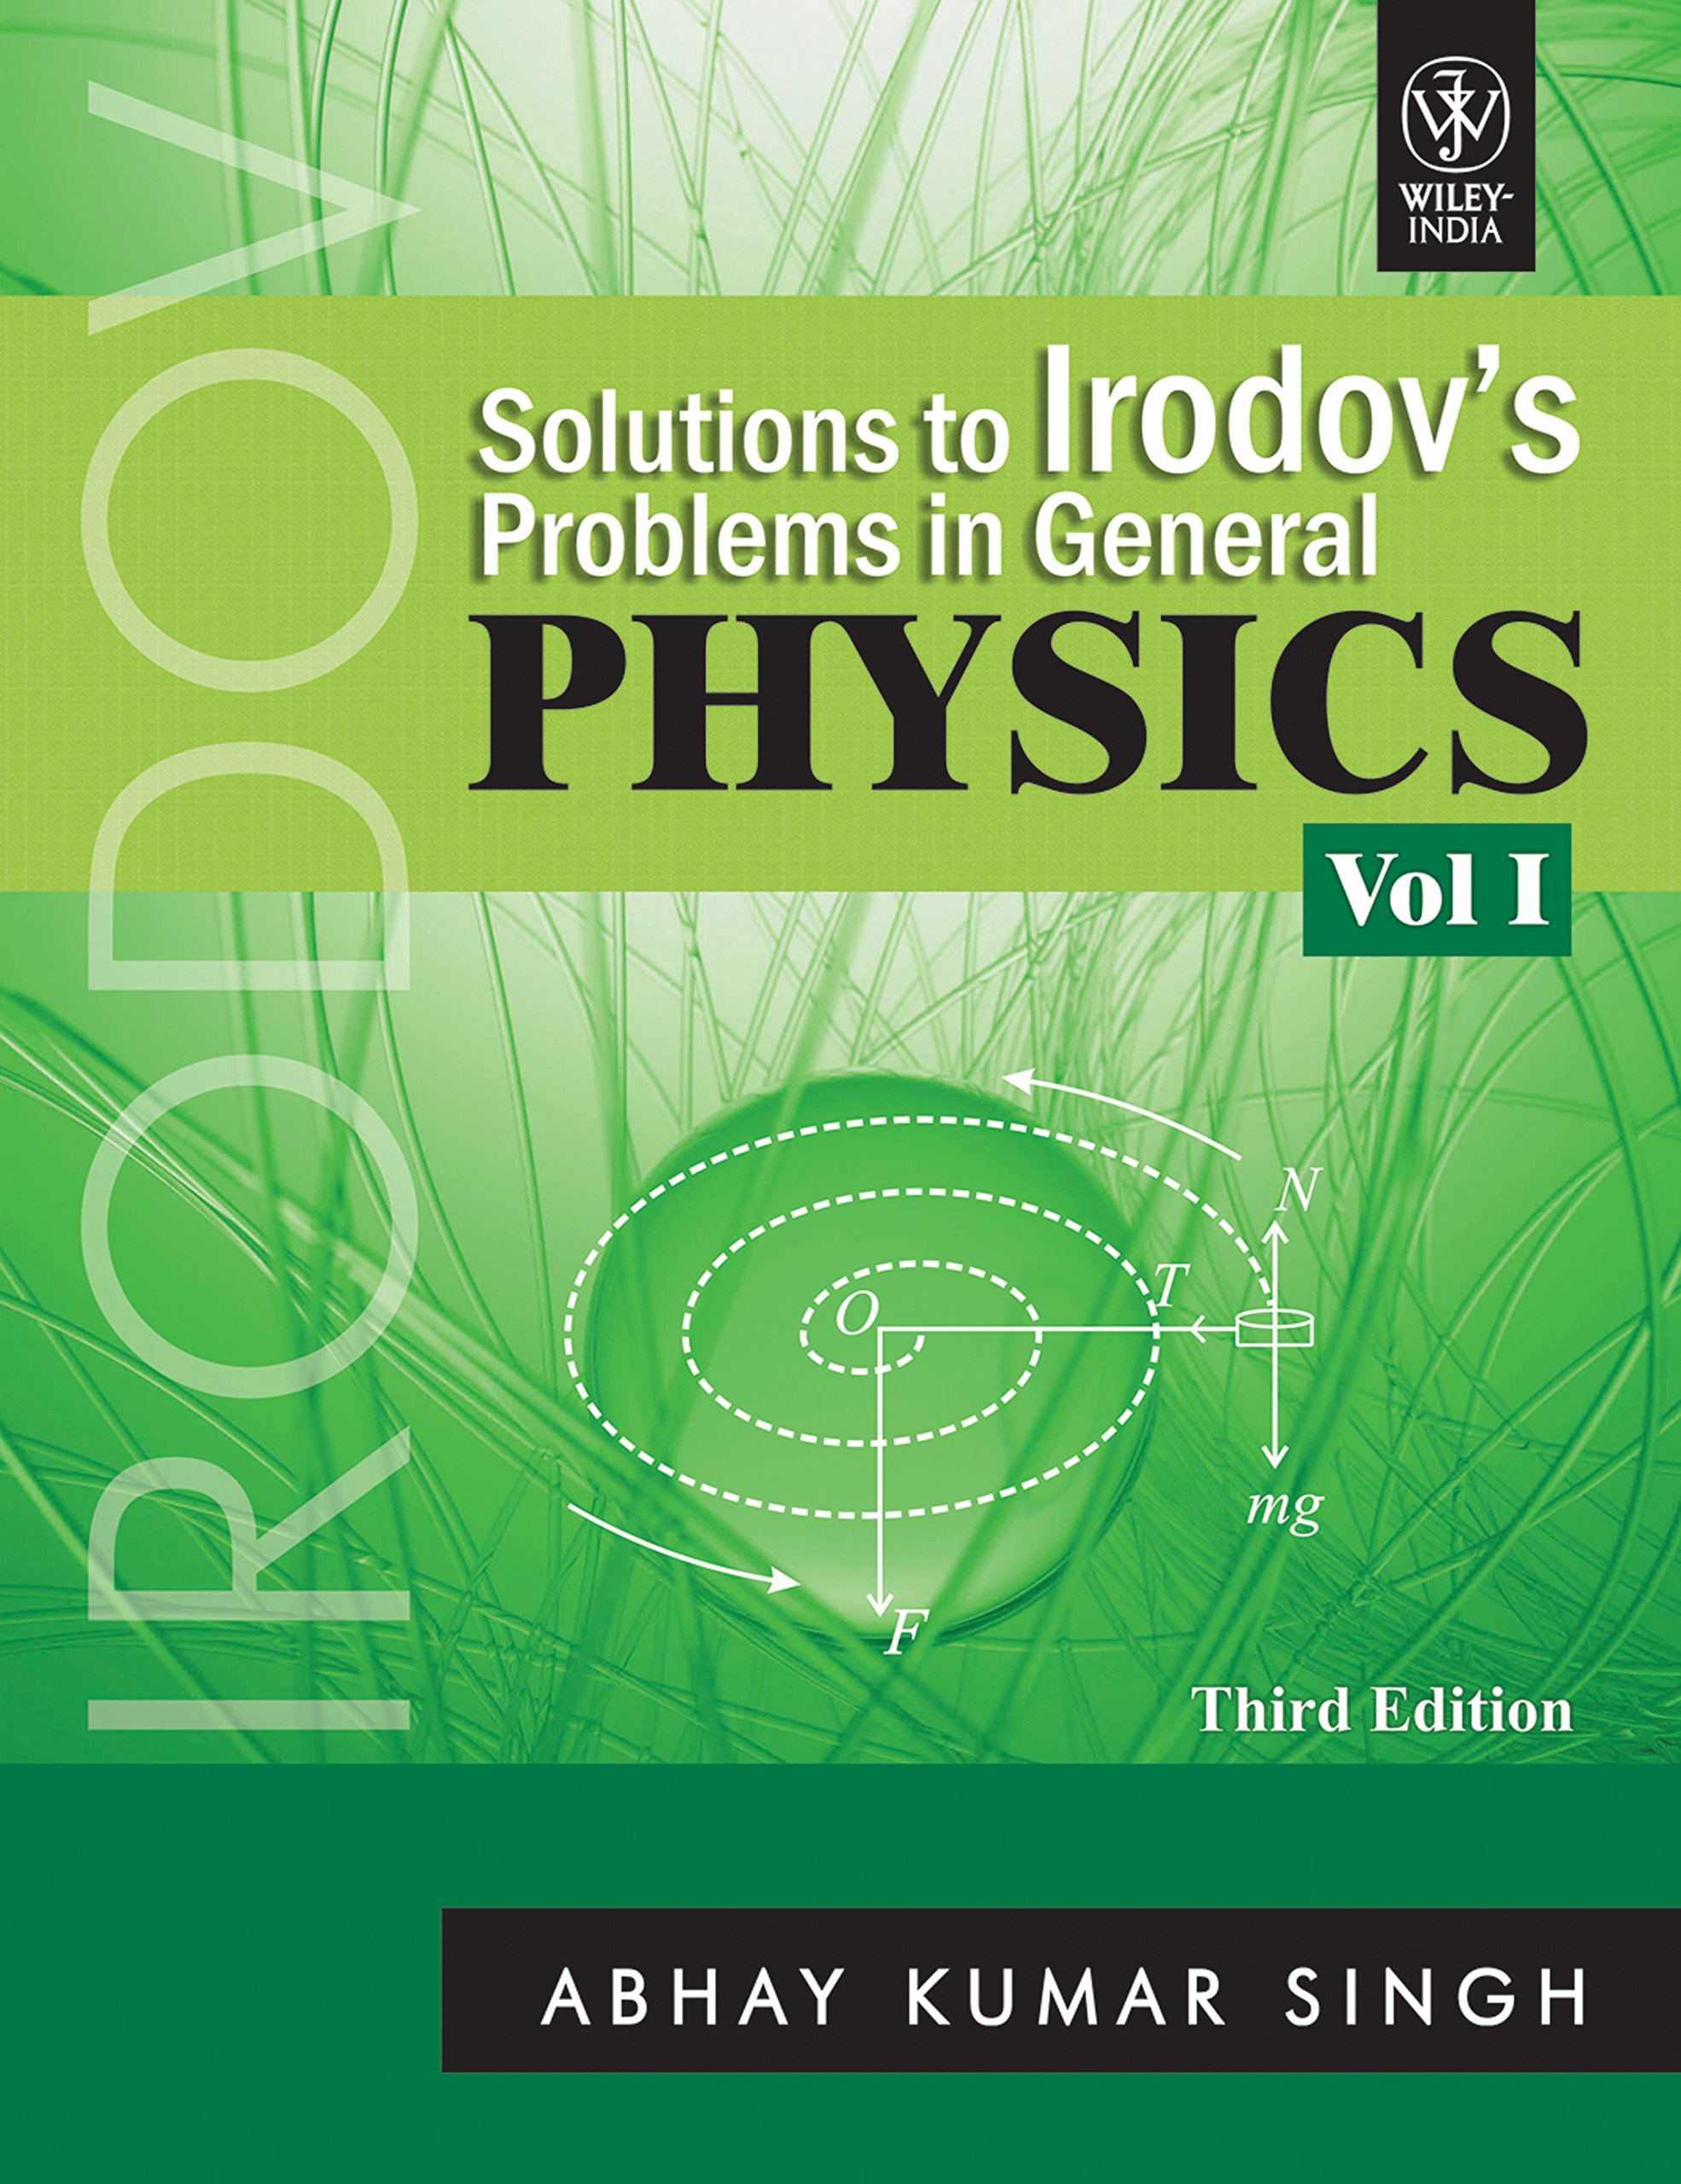 irodov s solution Irodov's solutions problems in general physics – volume 1 irodov is considered synonymous with problem-solving and concept development in physicsthe problems.